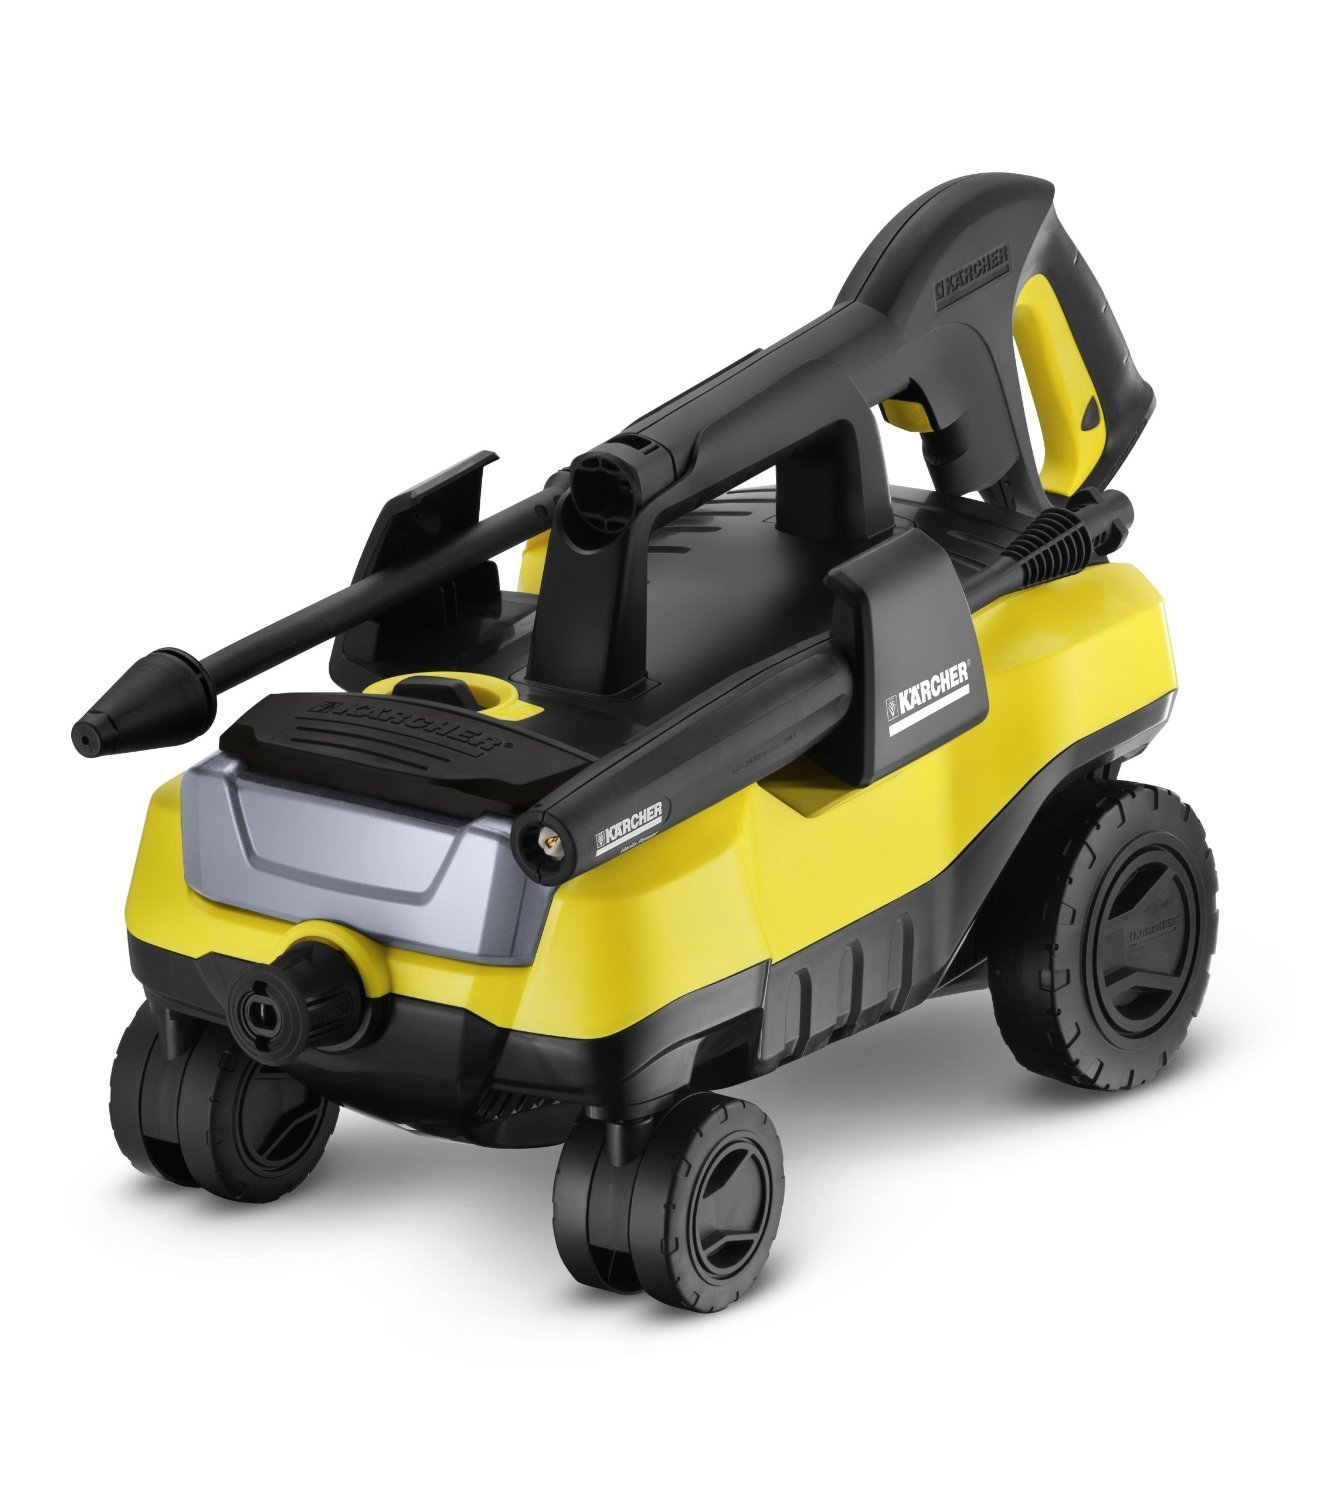 Karcher K 3.000  sc 1 st  Sutherlands & Karcher K 3.000 Follow Me 1800-Psi Electric Pressure Washer at ...